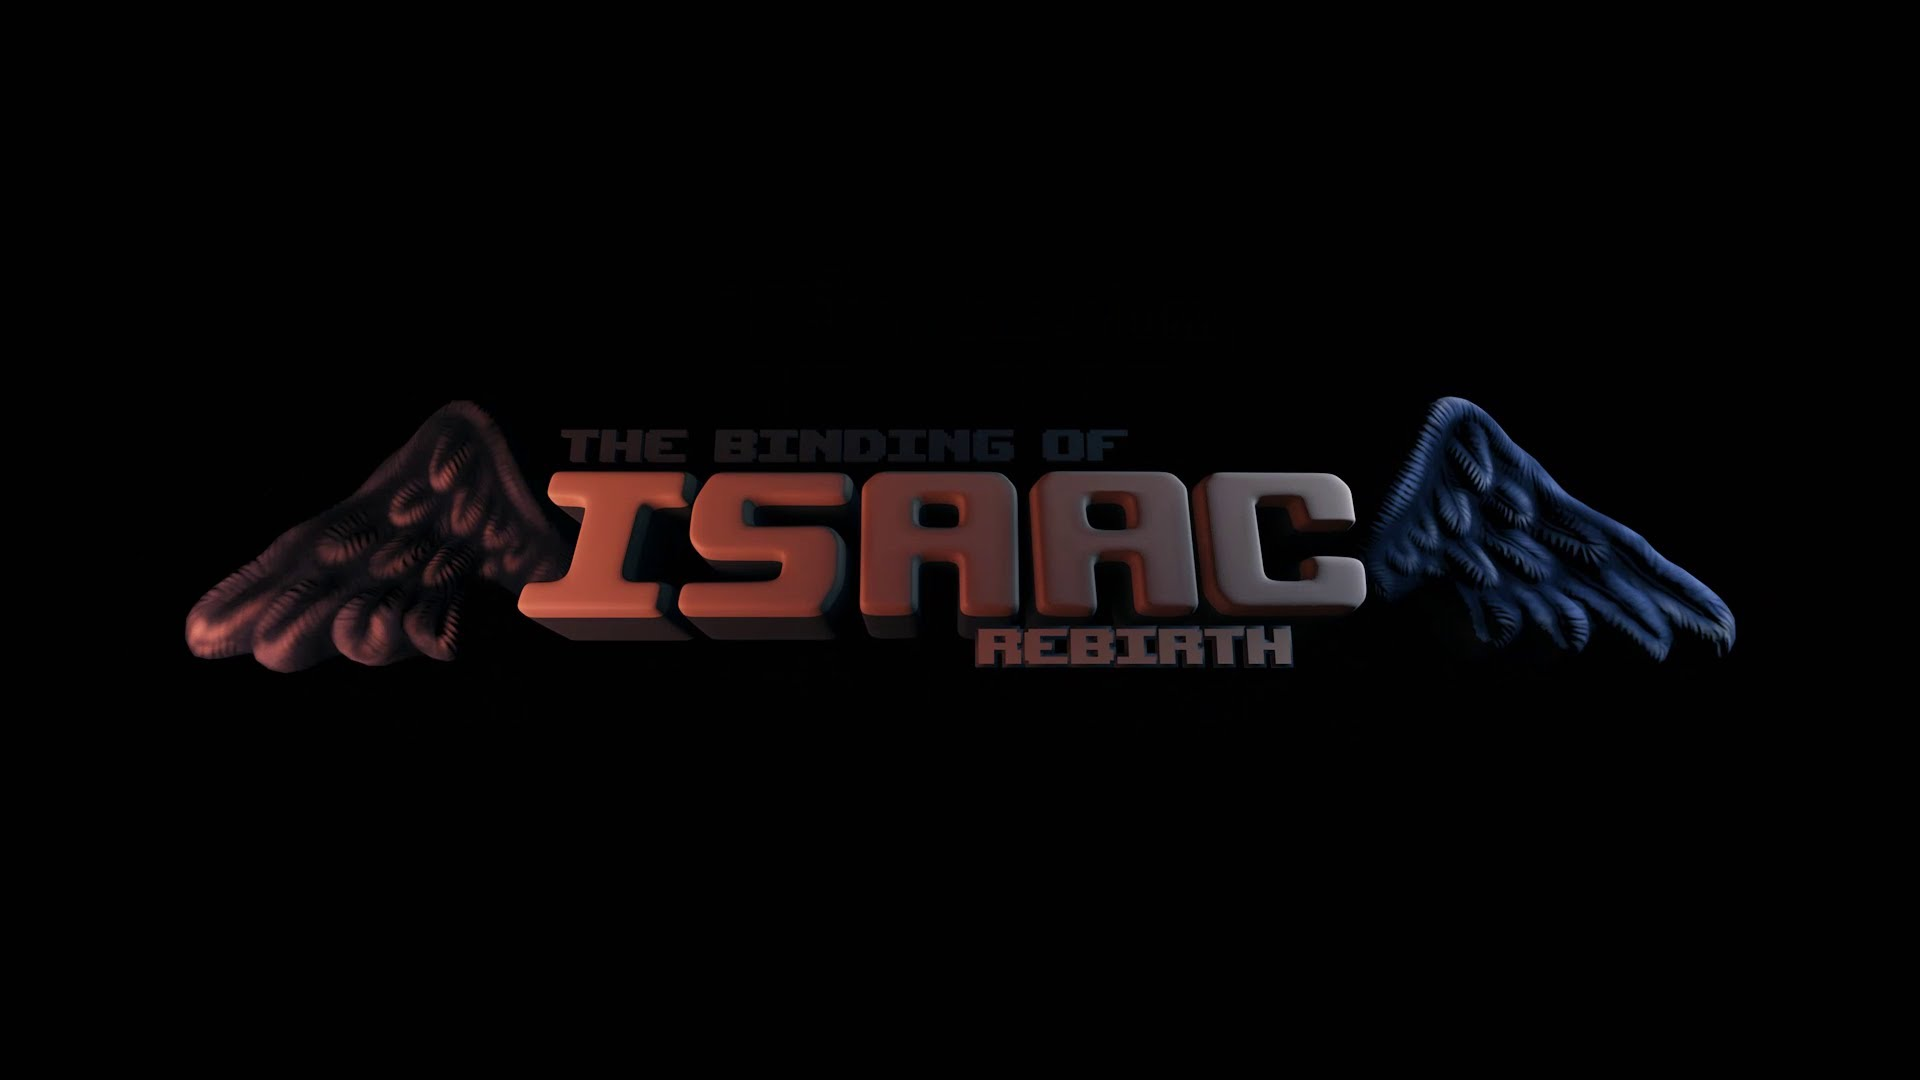 The Binding of Isaac: Rebirth - Soundtrack on Steam